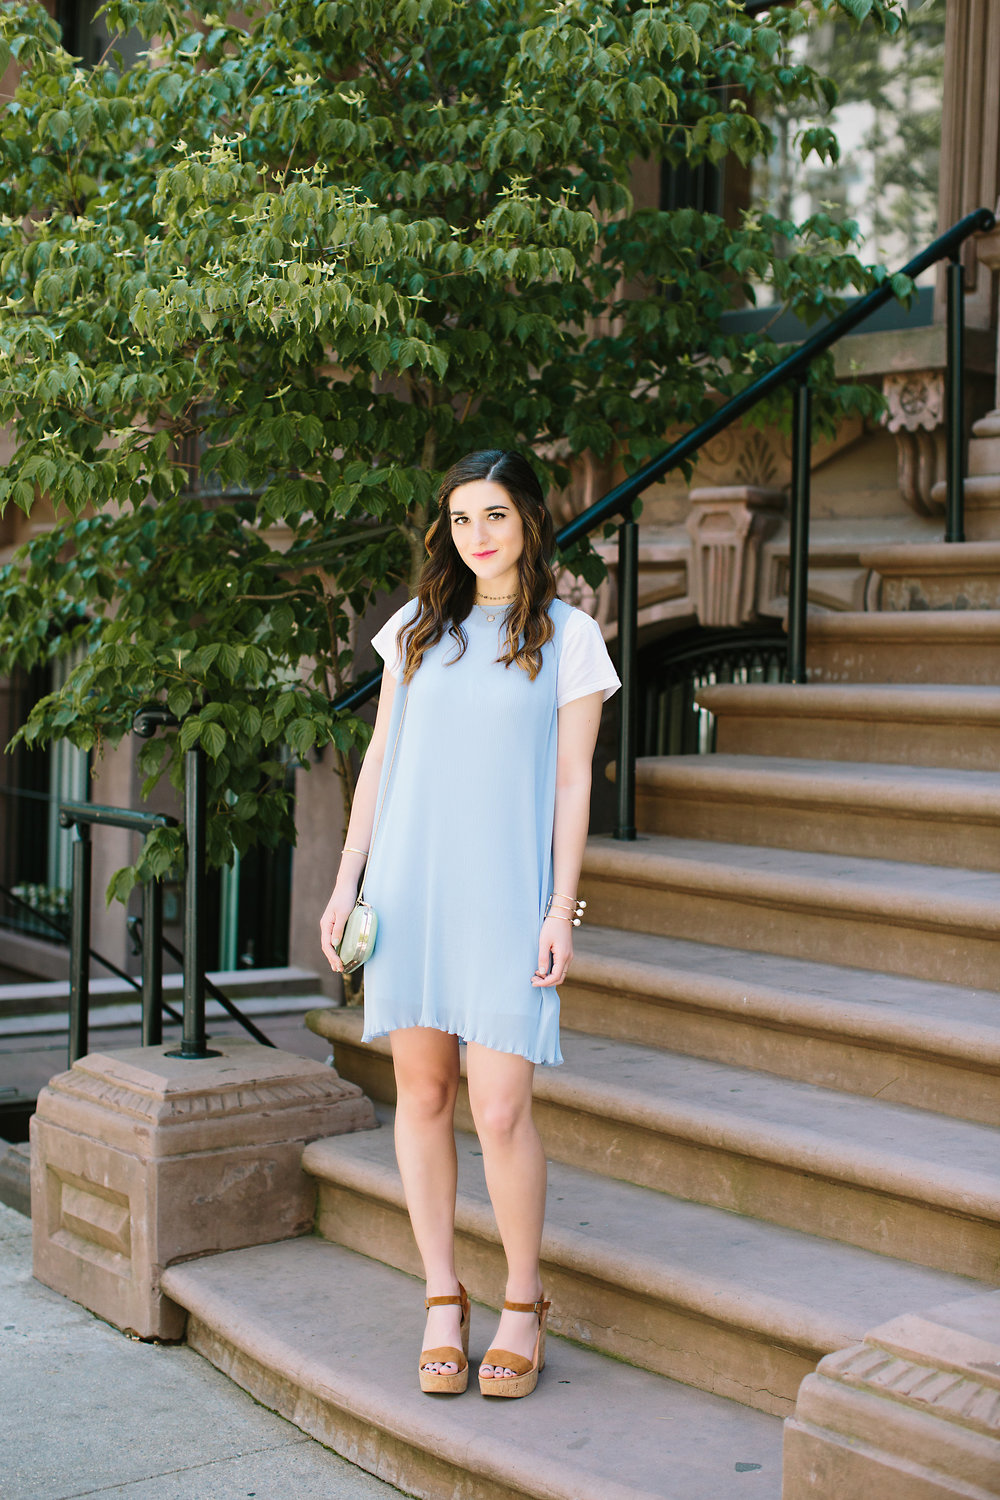 Pastel Blue Pleated Dress Keepsake The Label Louboutins & Love Fashion Blog Esther Santer NYC Street Style Blogger Outfit OOTD Pretty Photoshoot Upper East Side Dolce Vita Wedges Club Monaco Clutch Gold Jewelry Women White Tee Shirt Inspo Summer Look.jpg